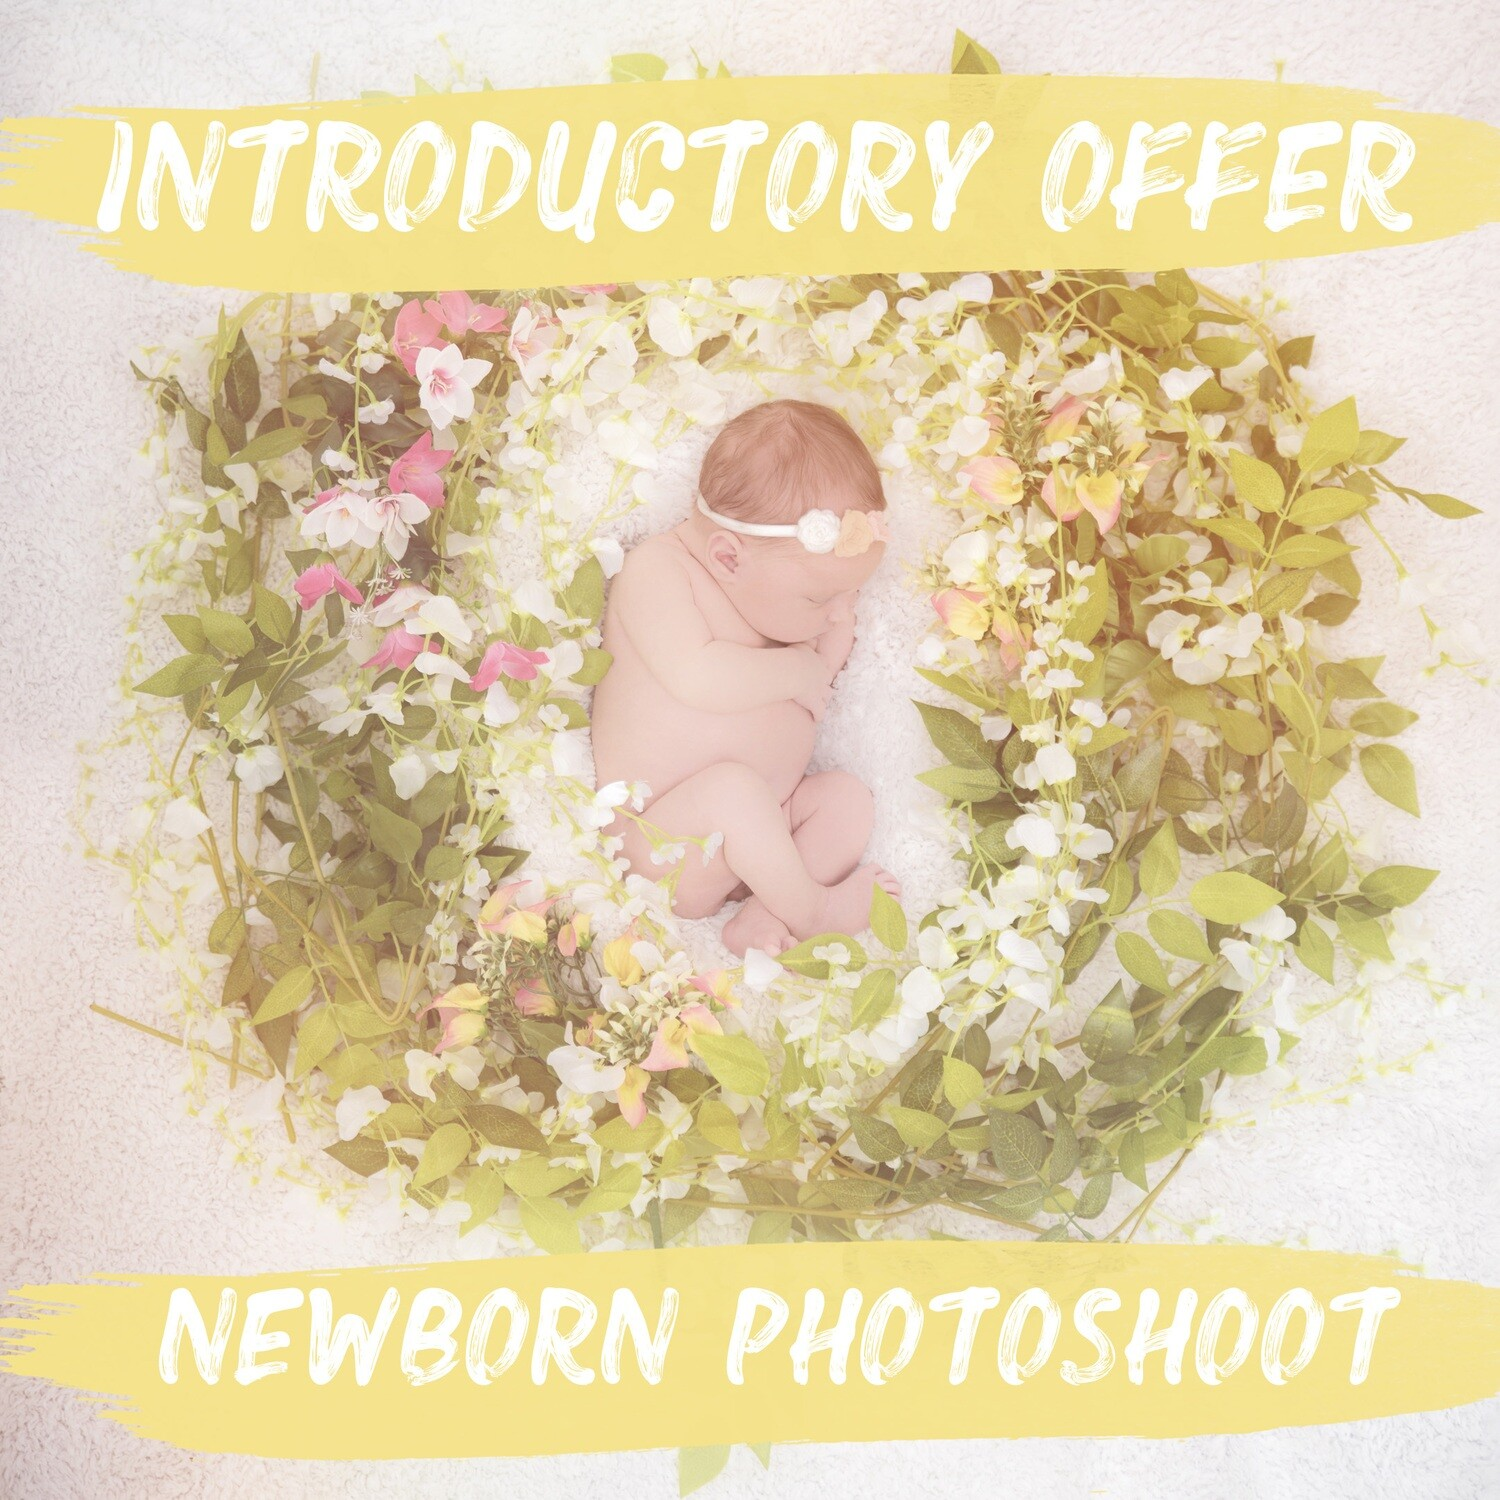 Newborn photoshoot & £50 gift voucher